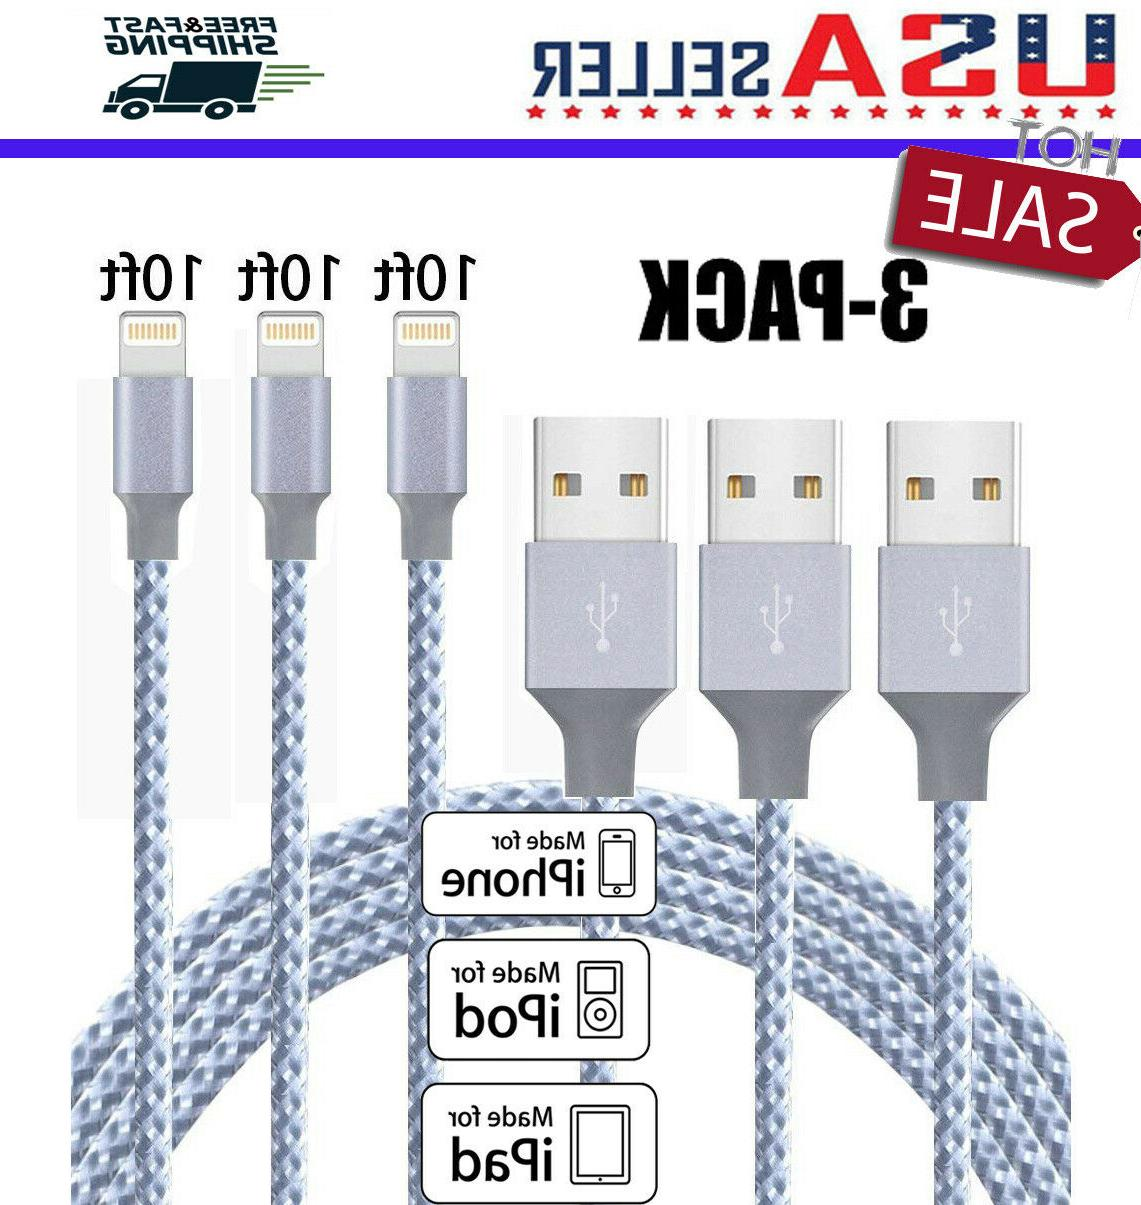 3pack 10ft lightning cable heavy duty